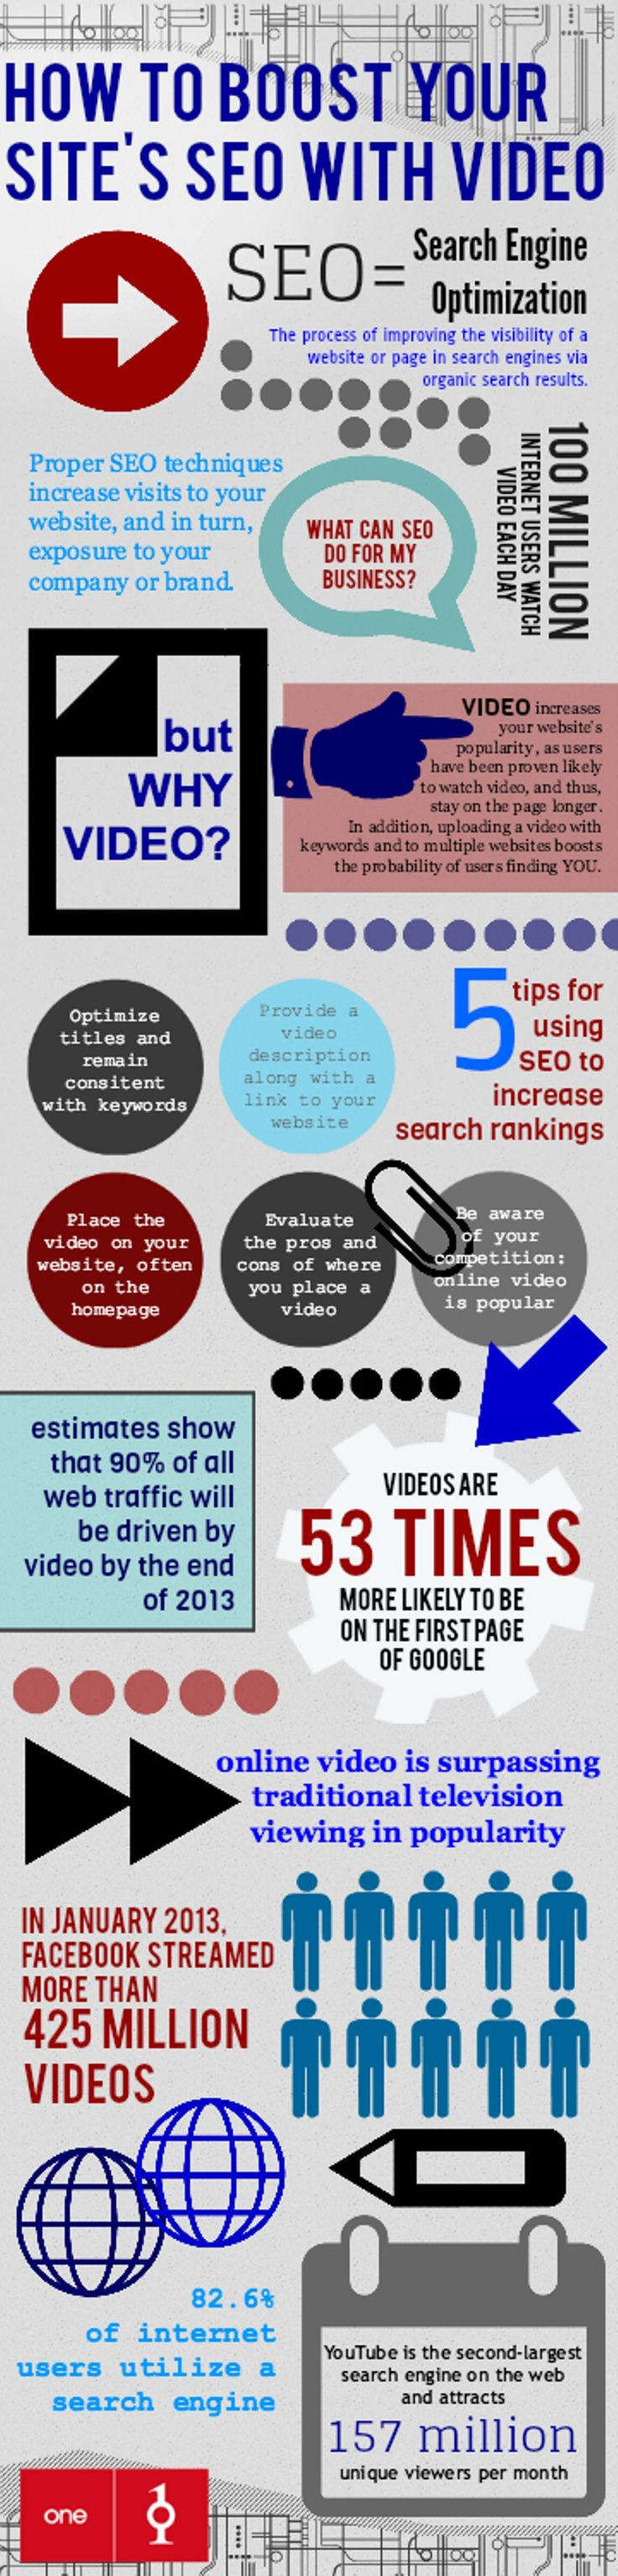 How to Boost Your Sites SEO with Video For more resources and tips F6dd22d1057eb32a94bca70738ef8033